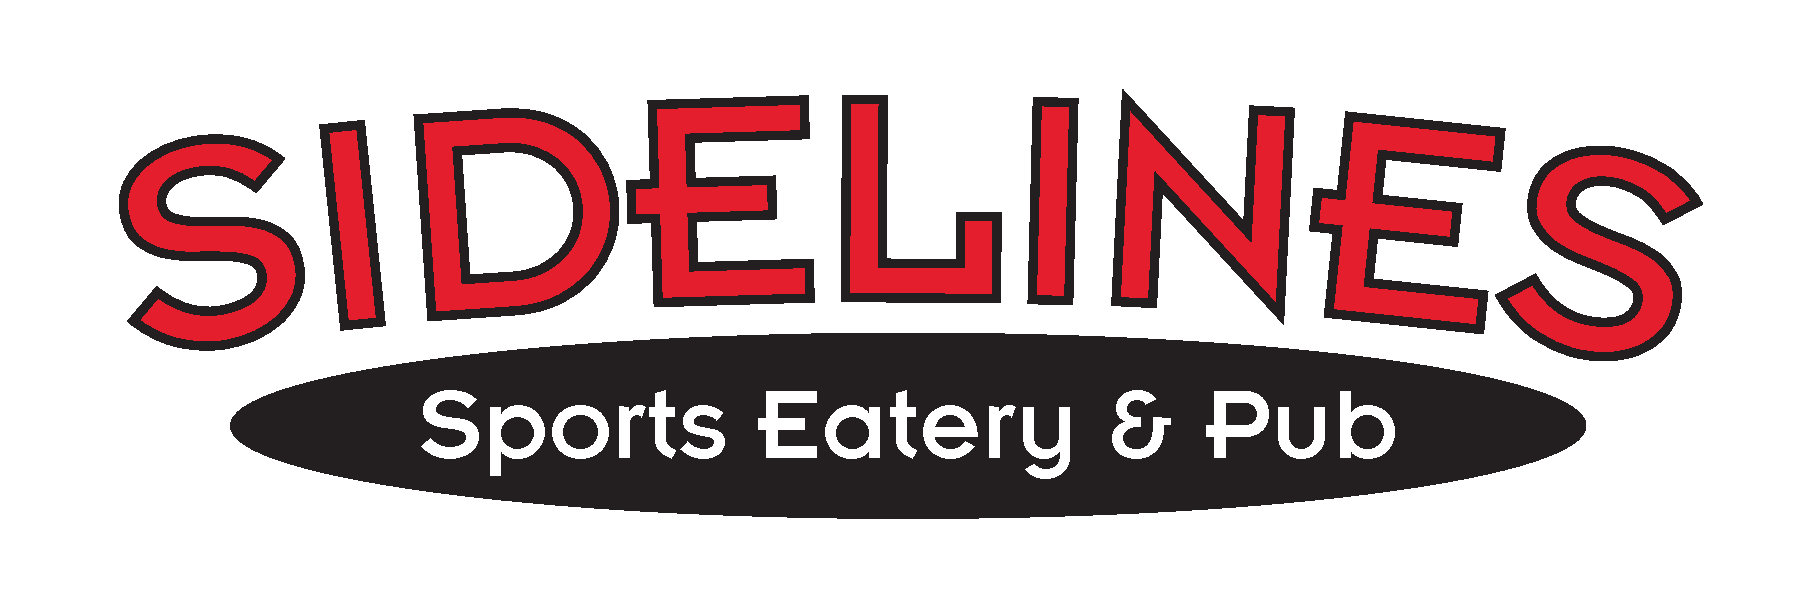 SIDELINES SPORTS EATERY (Mellwood) - CATERING